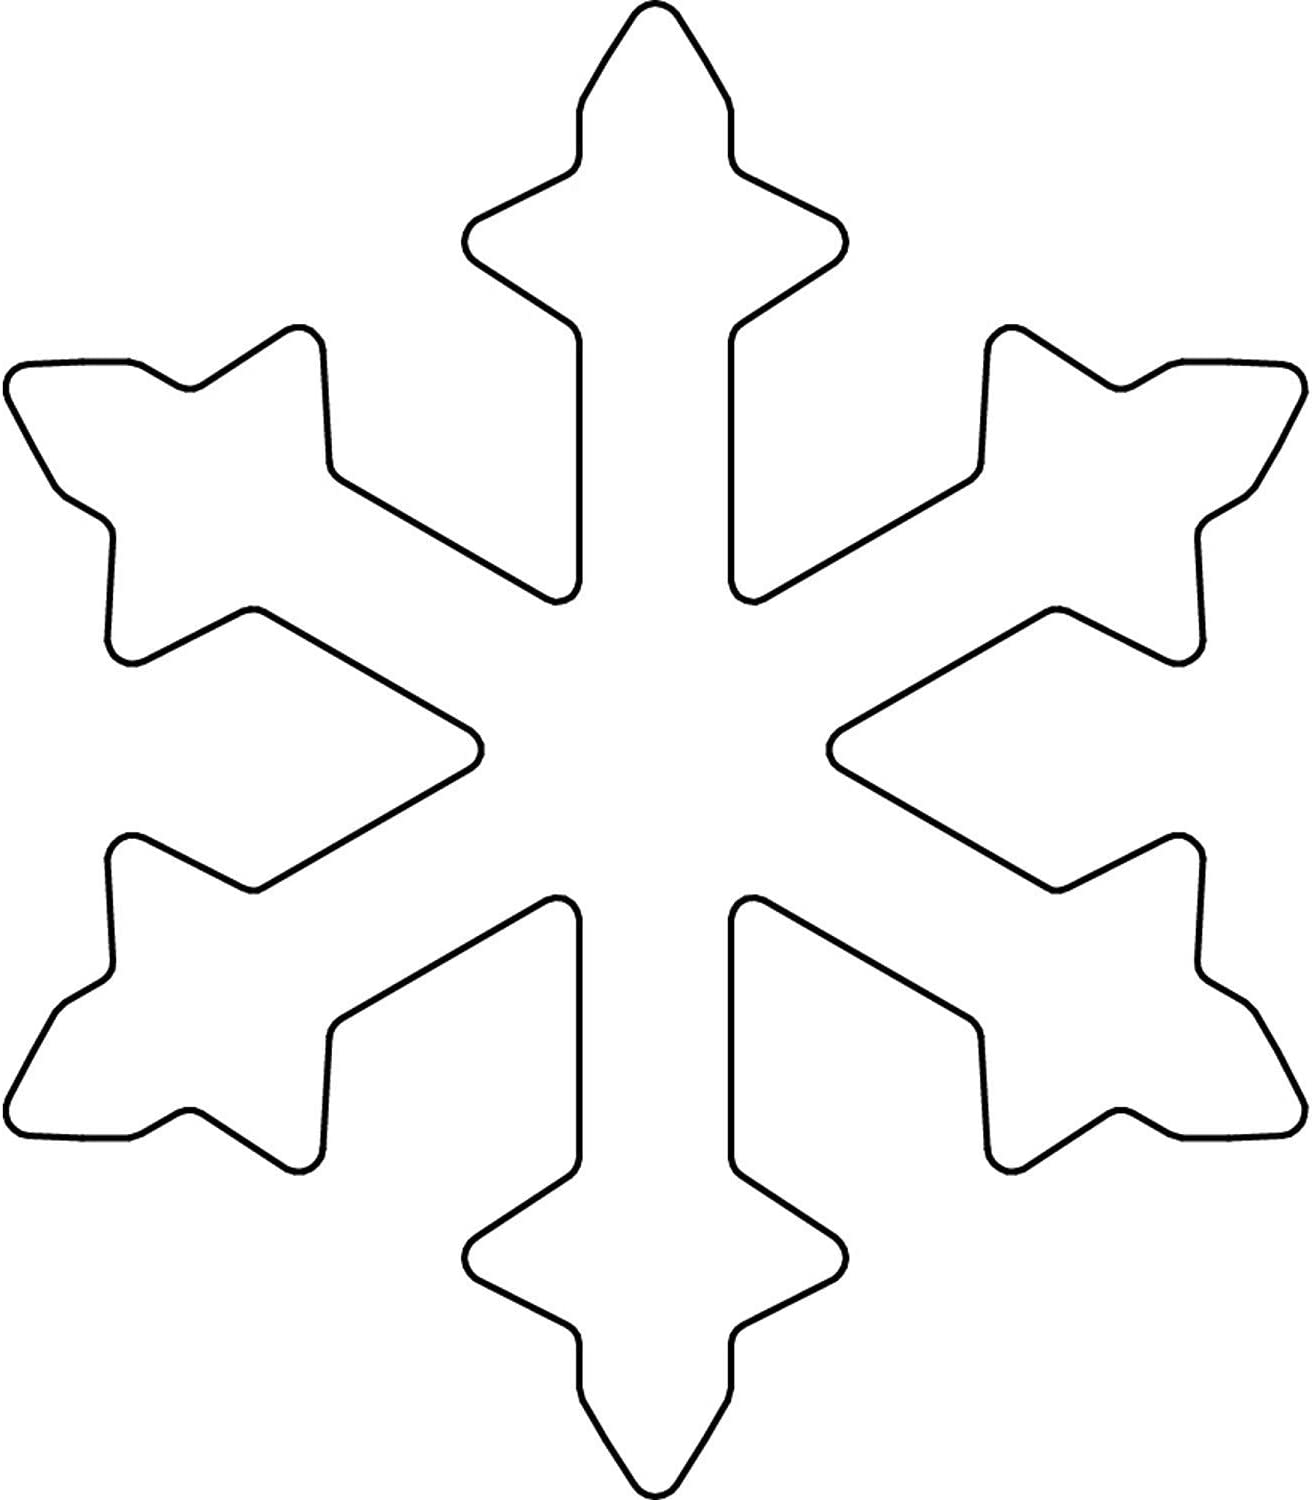 Kaiser Happy Holidays Snowflake Cookie Cutter 6 x 5 x 6 cm Stainless Steel